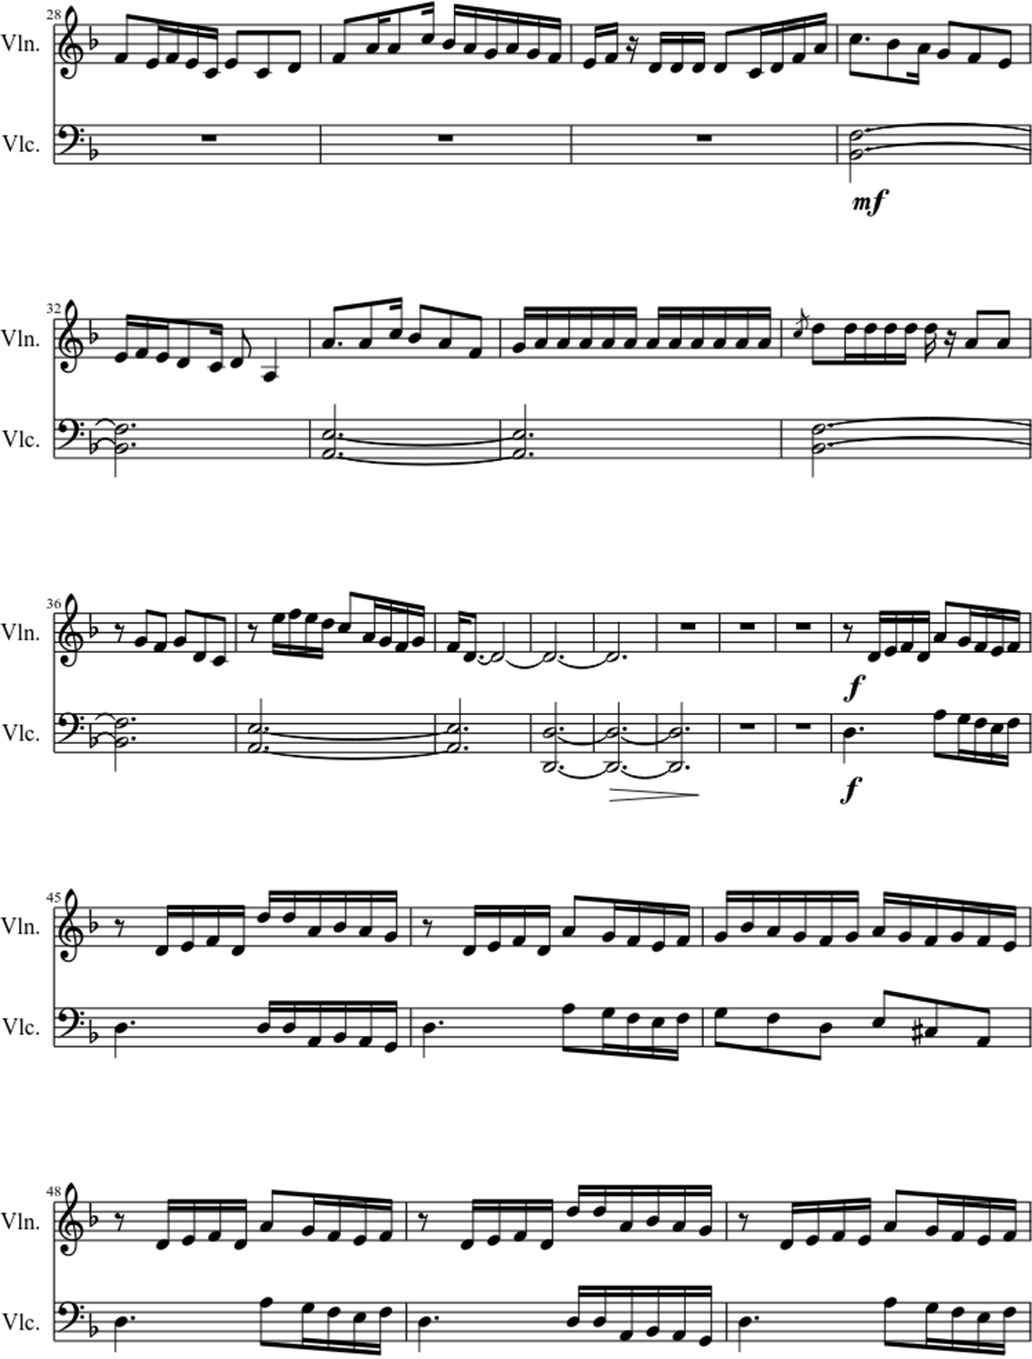 Red like roses sheet music notes 2